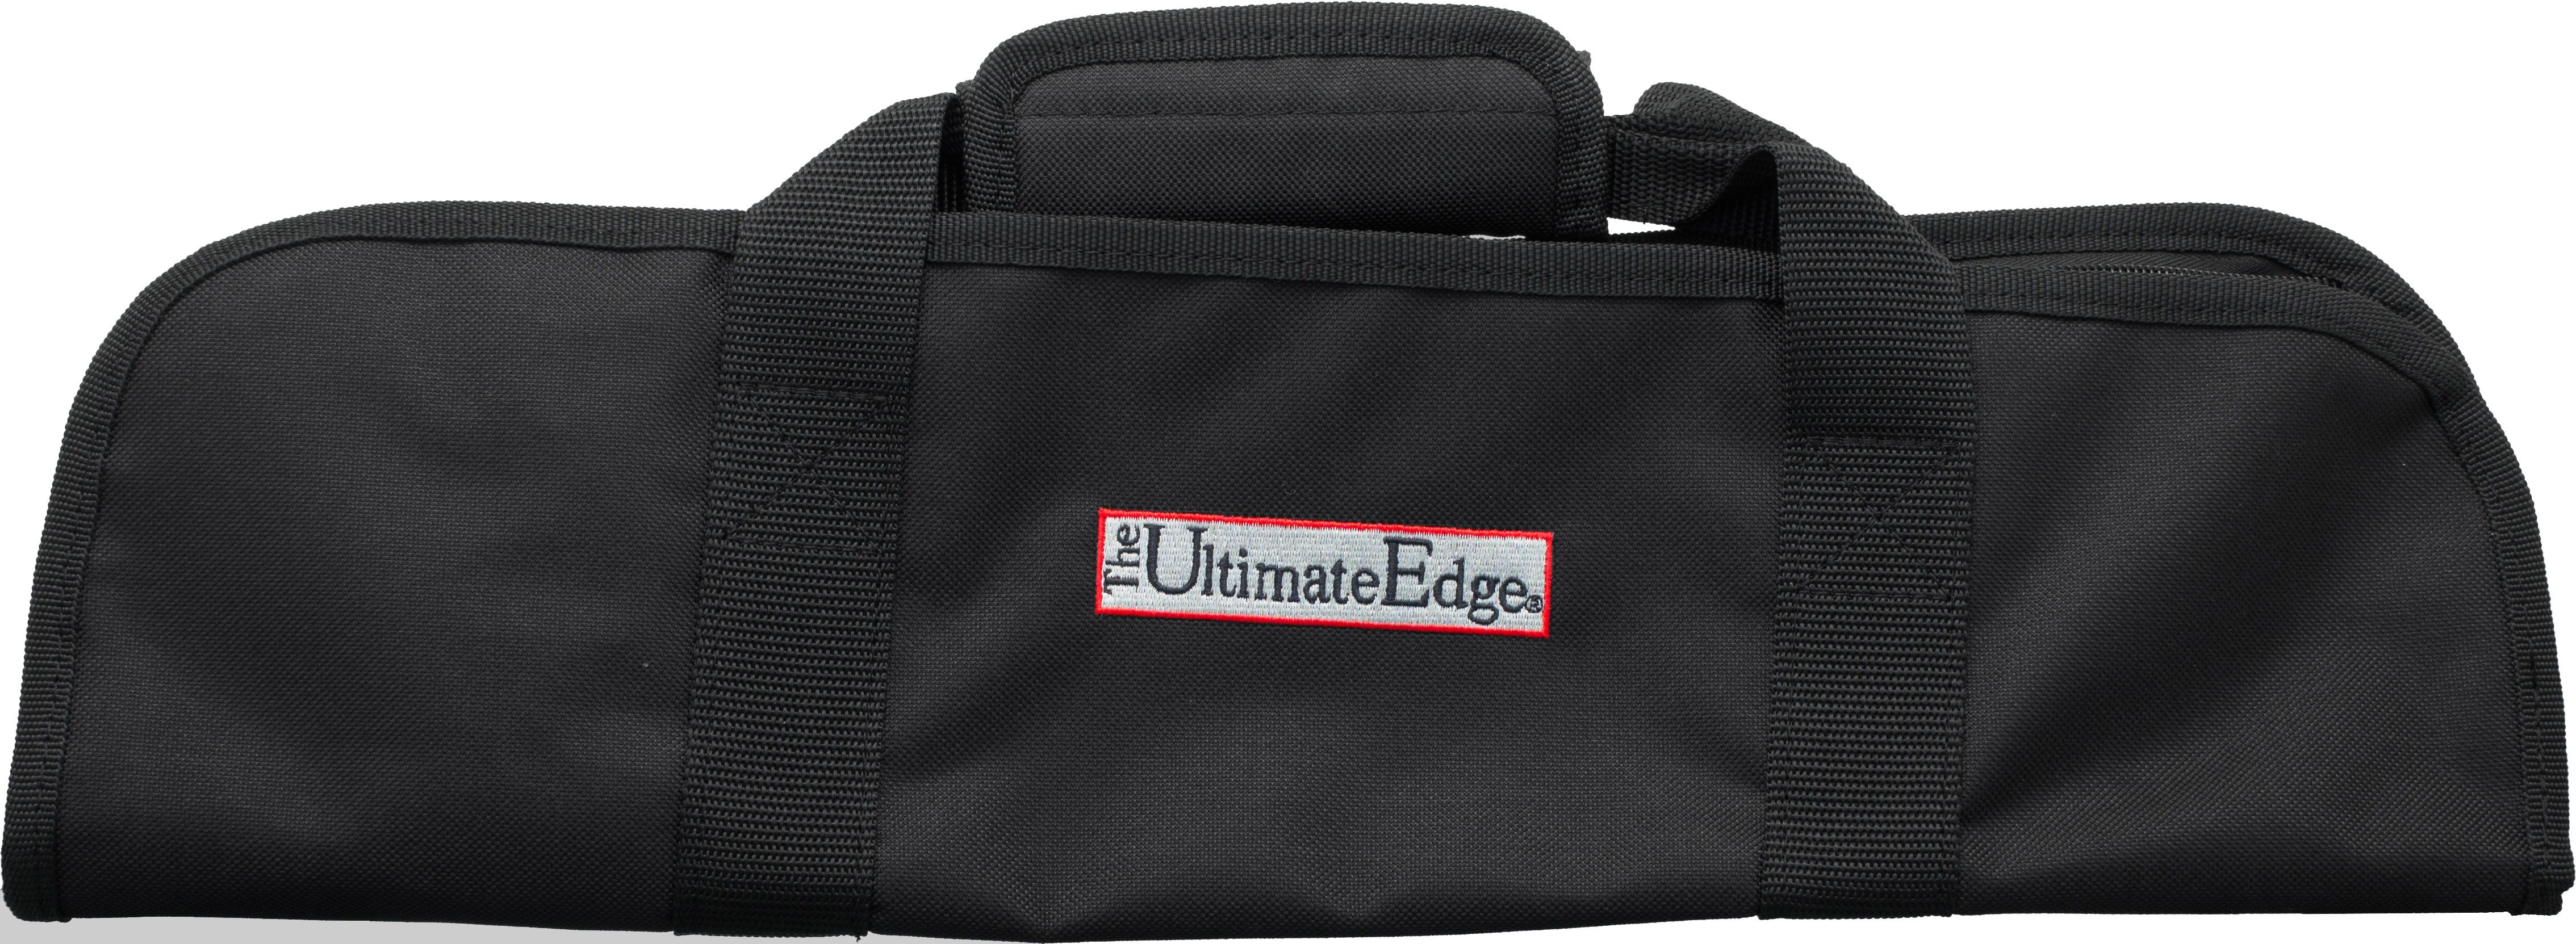 The Ultimate Edge 5 Piece Knife Case, Black